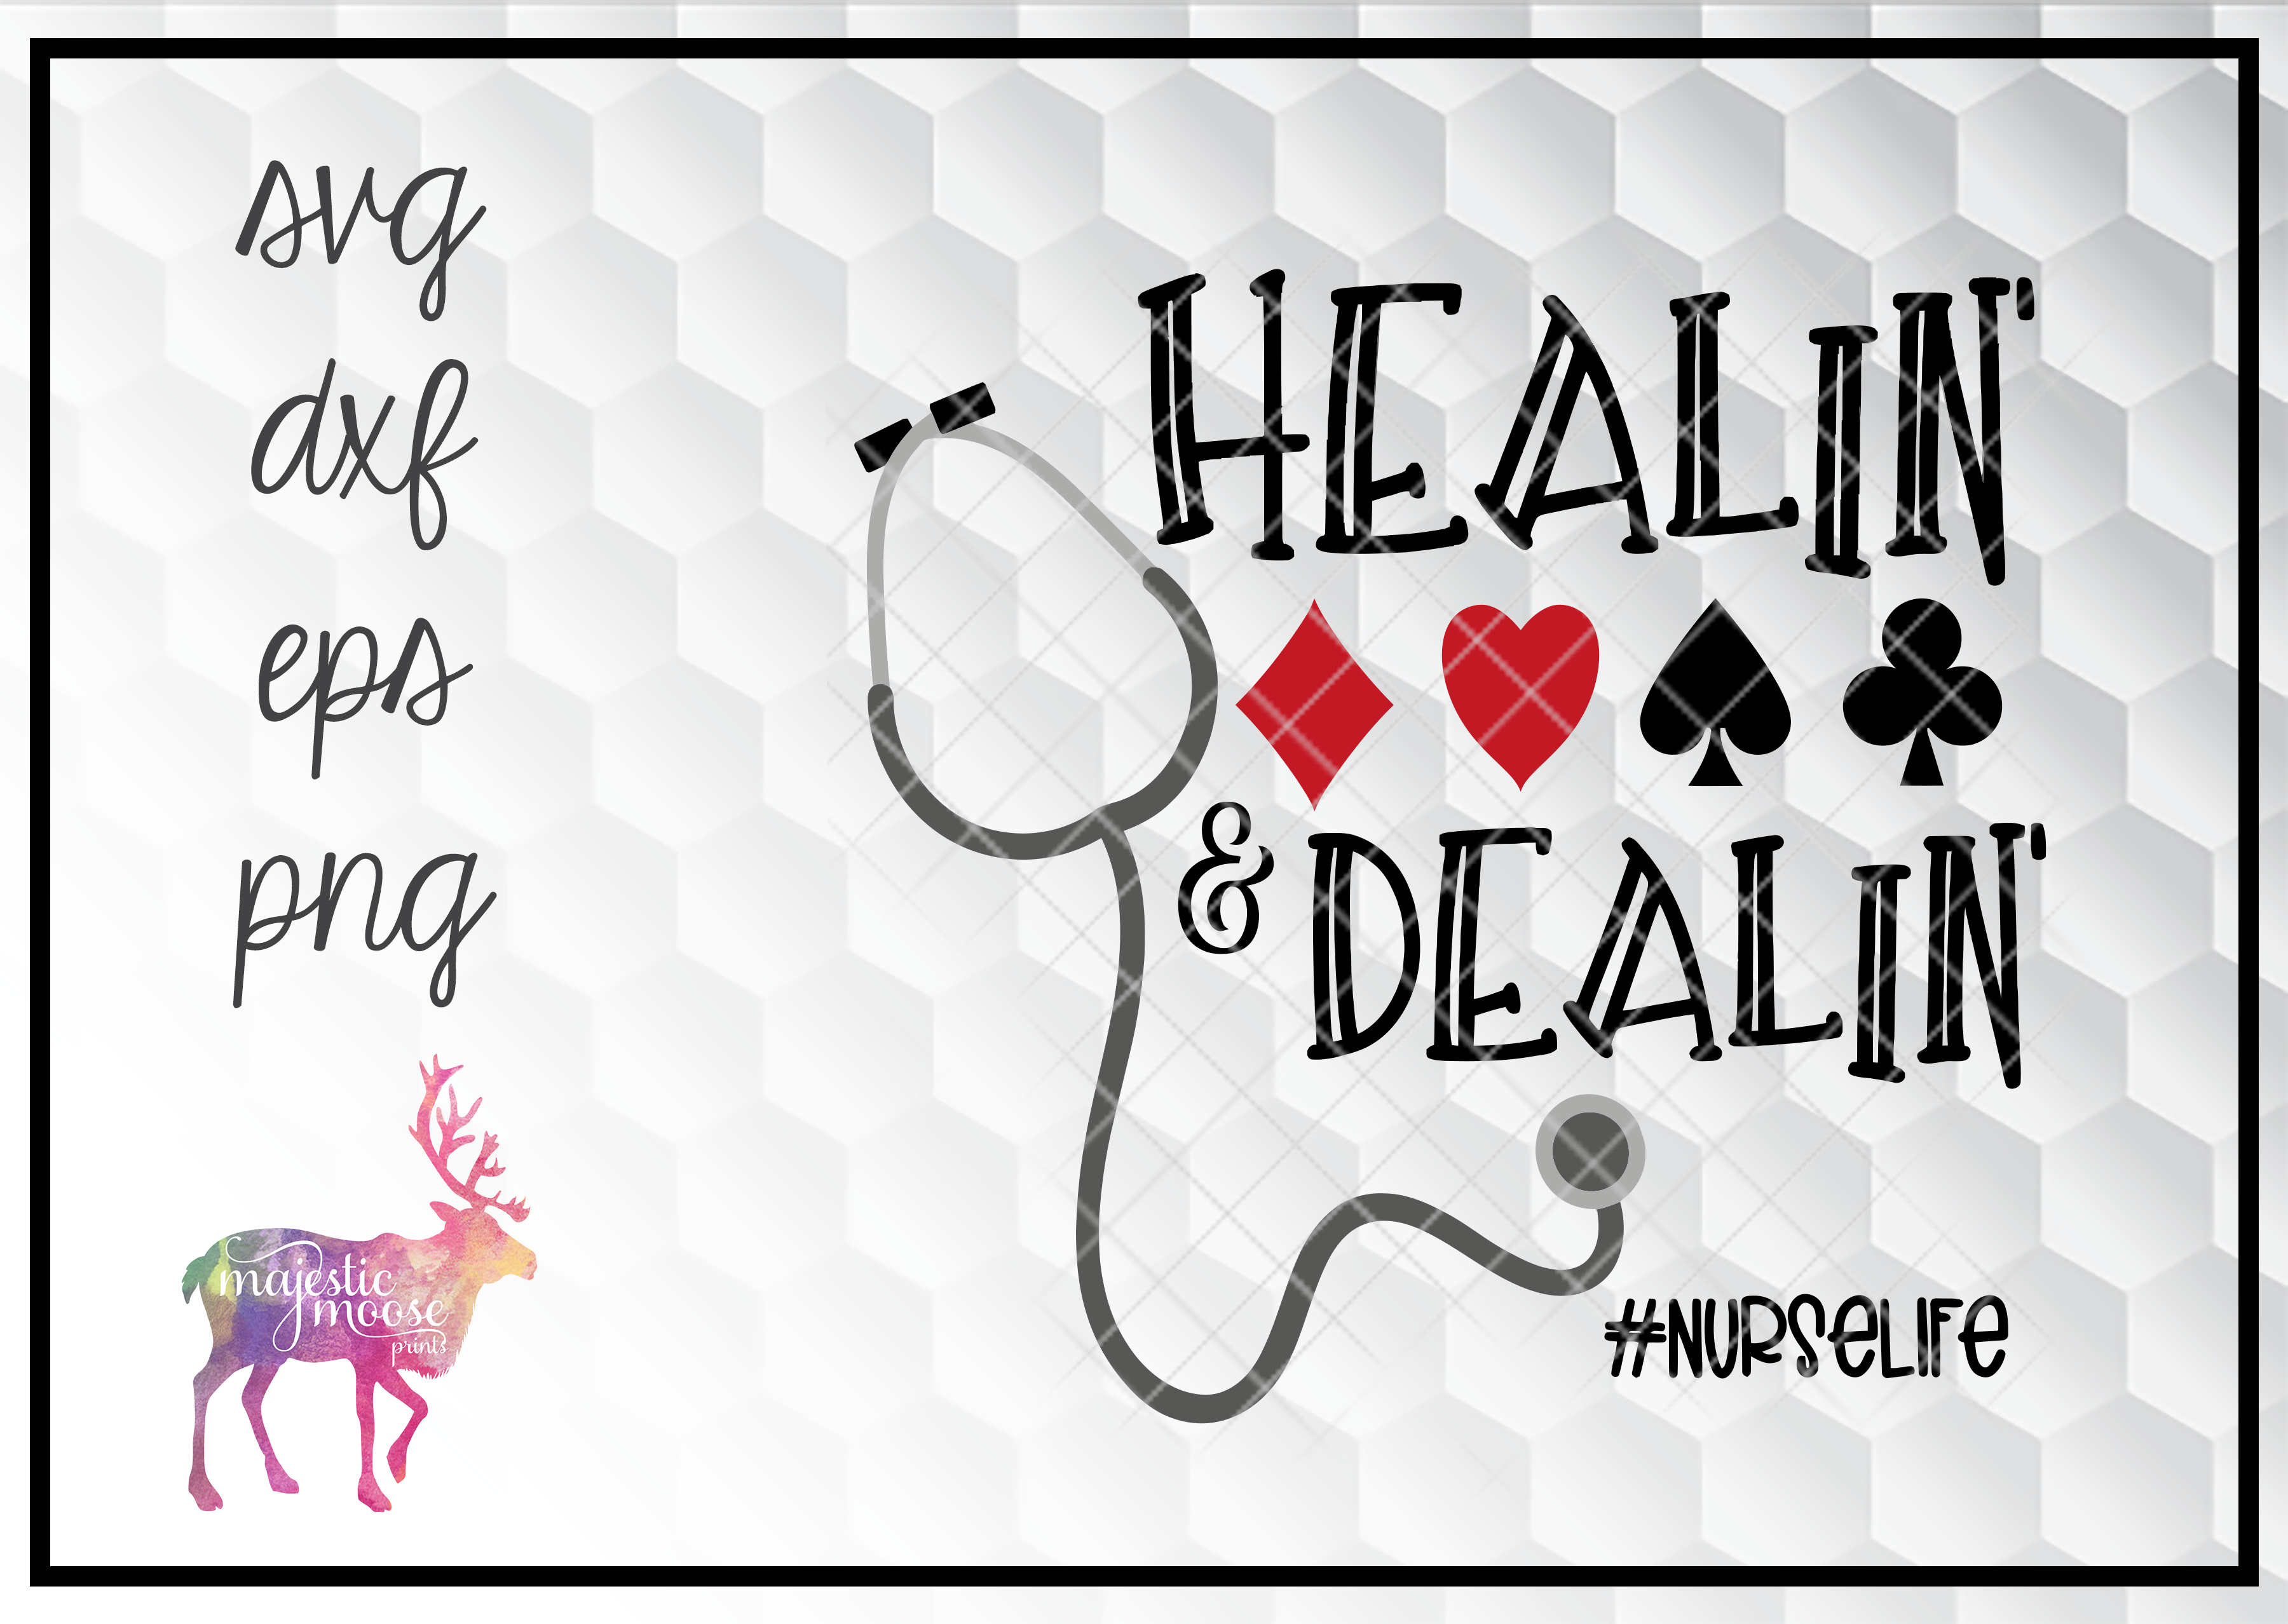 Download Free Healin And Dealin Nurse Playing Cards Graphic By for Cricut Explore, Silhouette and other cutting machines.